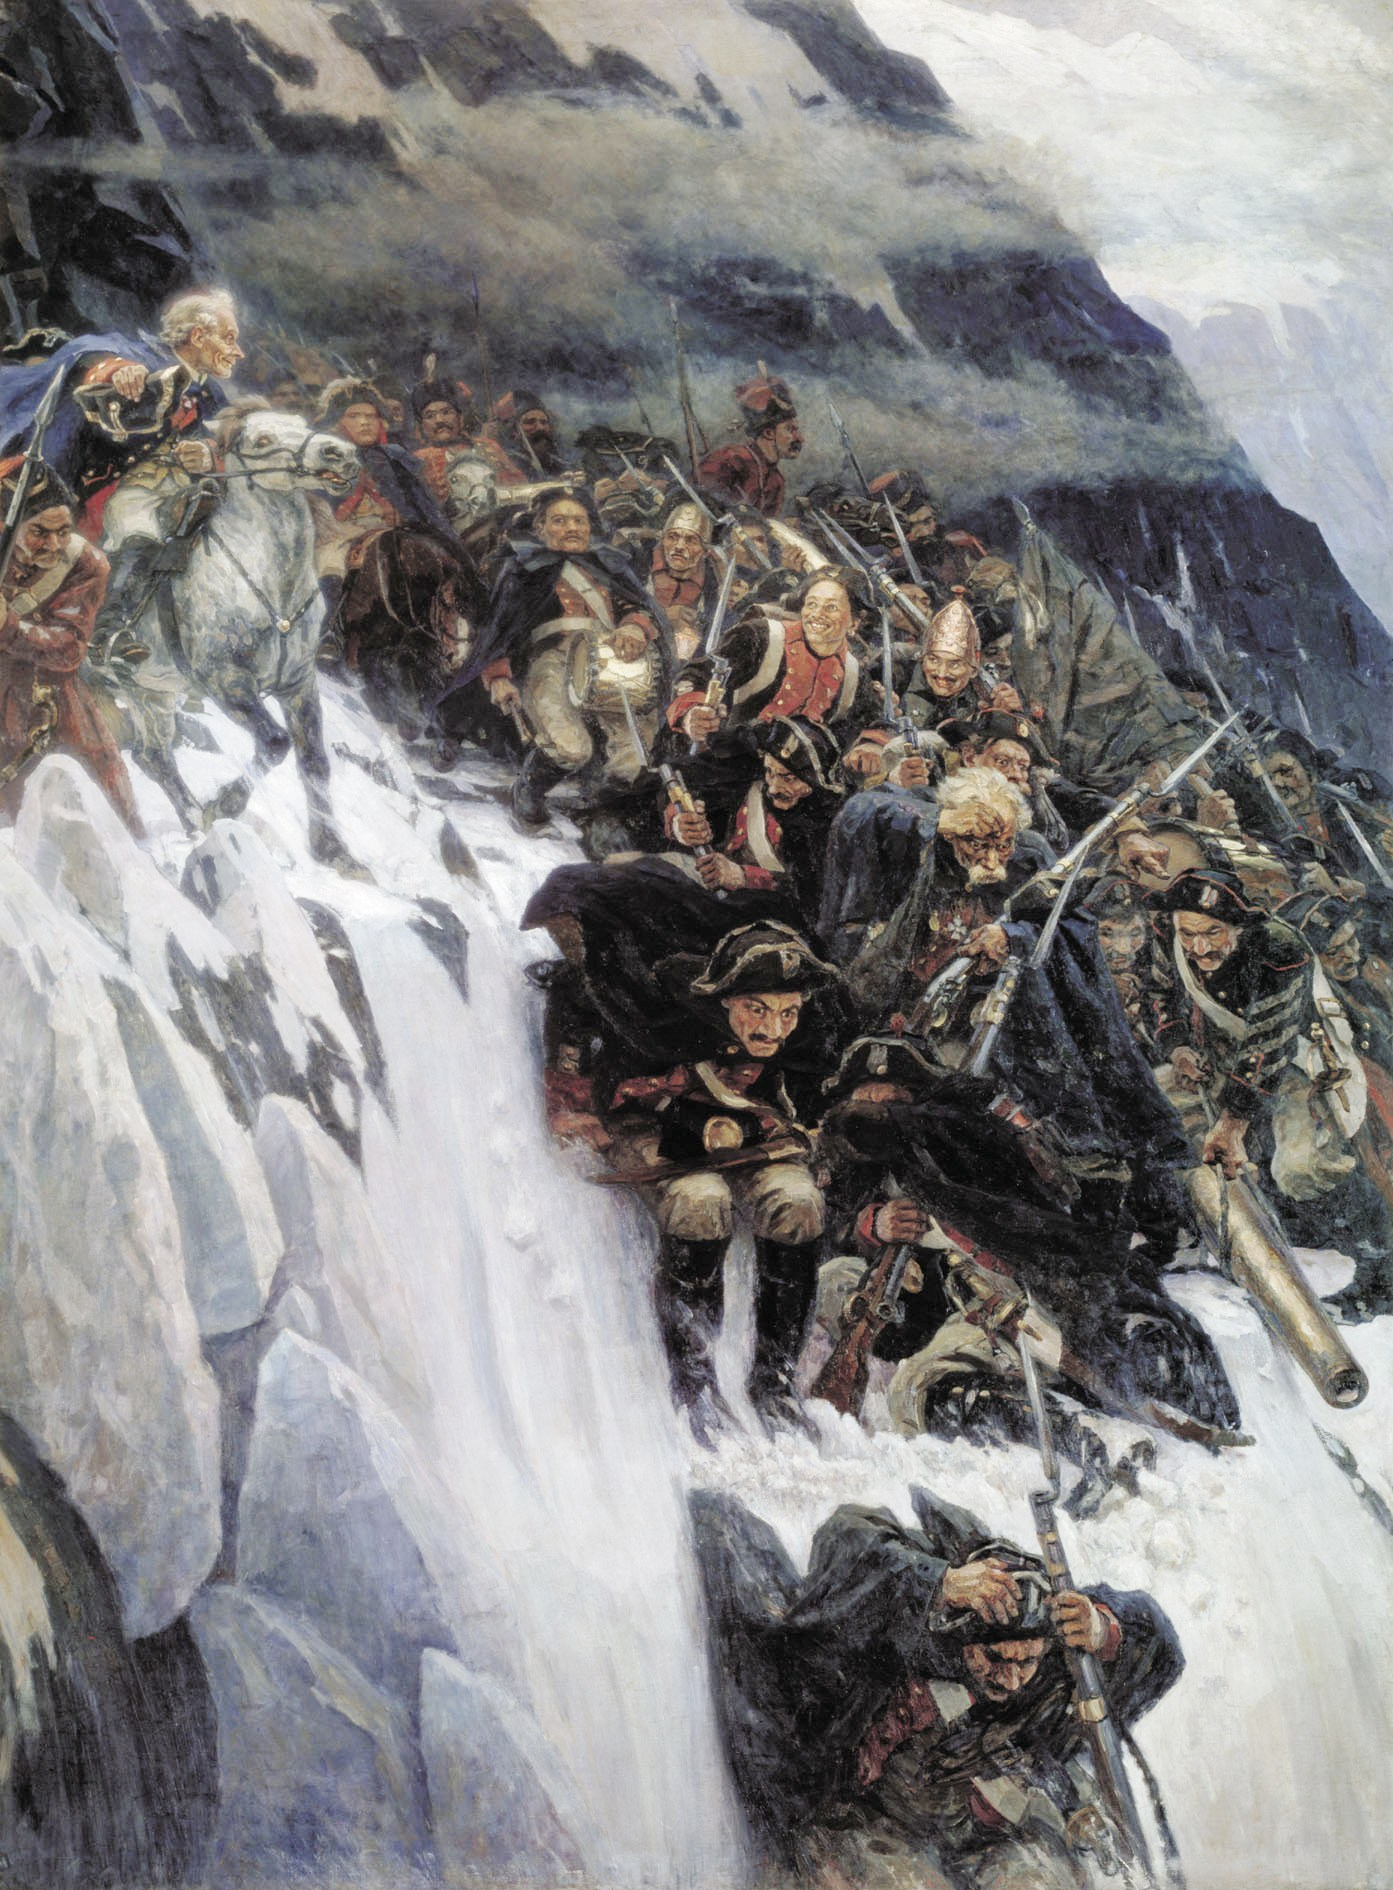 https://upload.wikimedia.org/wikipedia/commons/9/99/Suvorov_crossing_the_alps.jpg